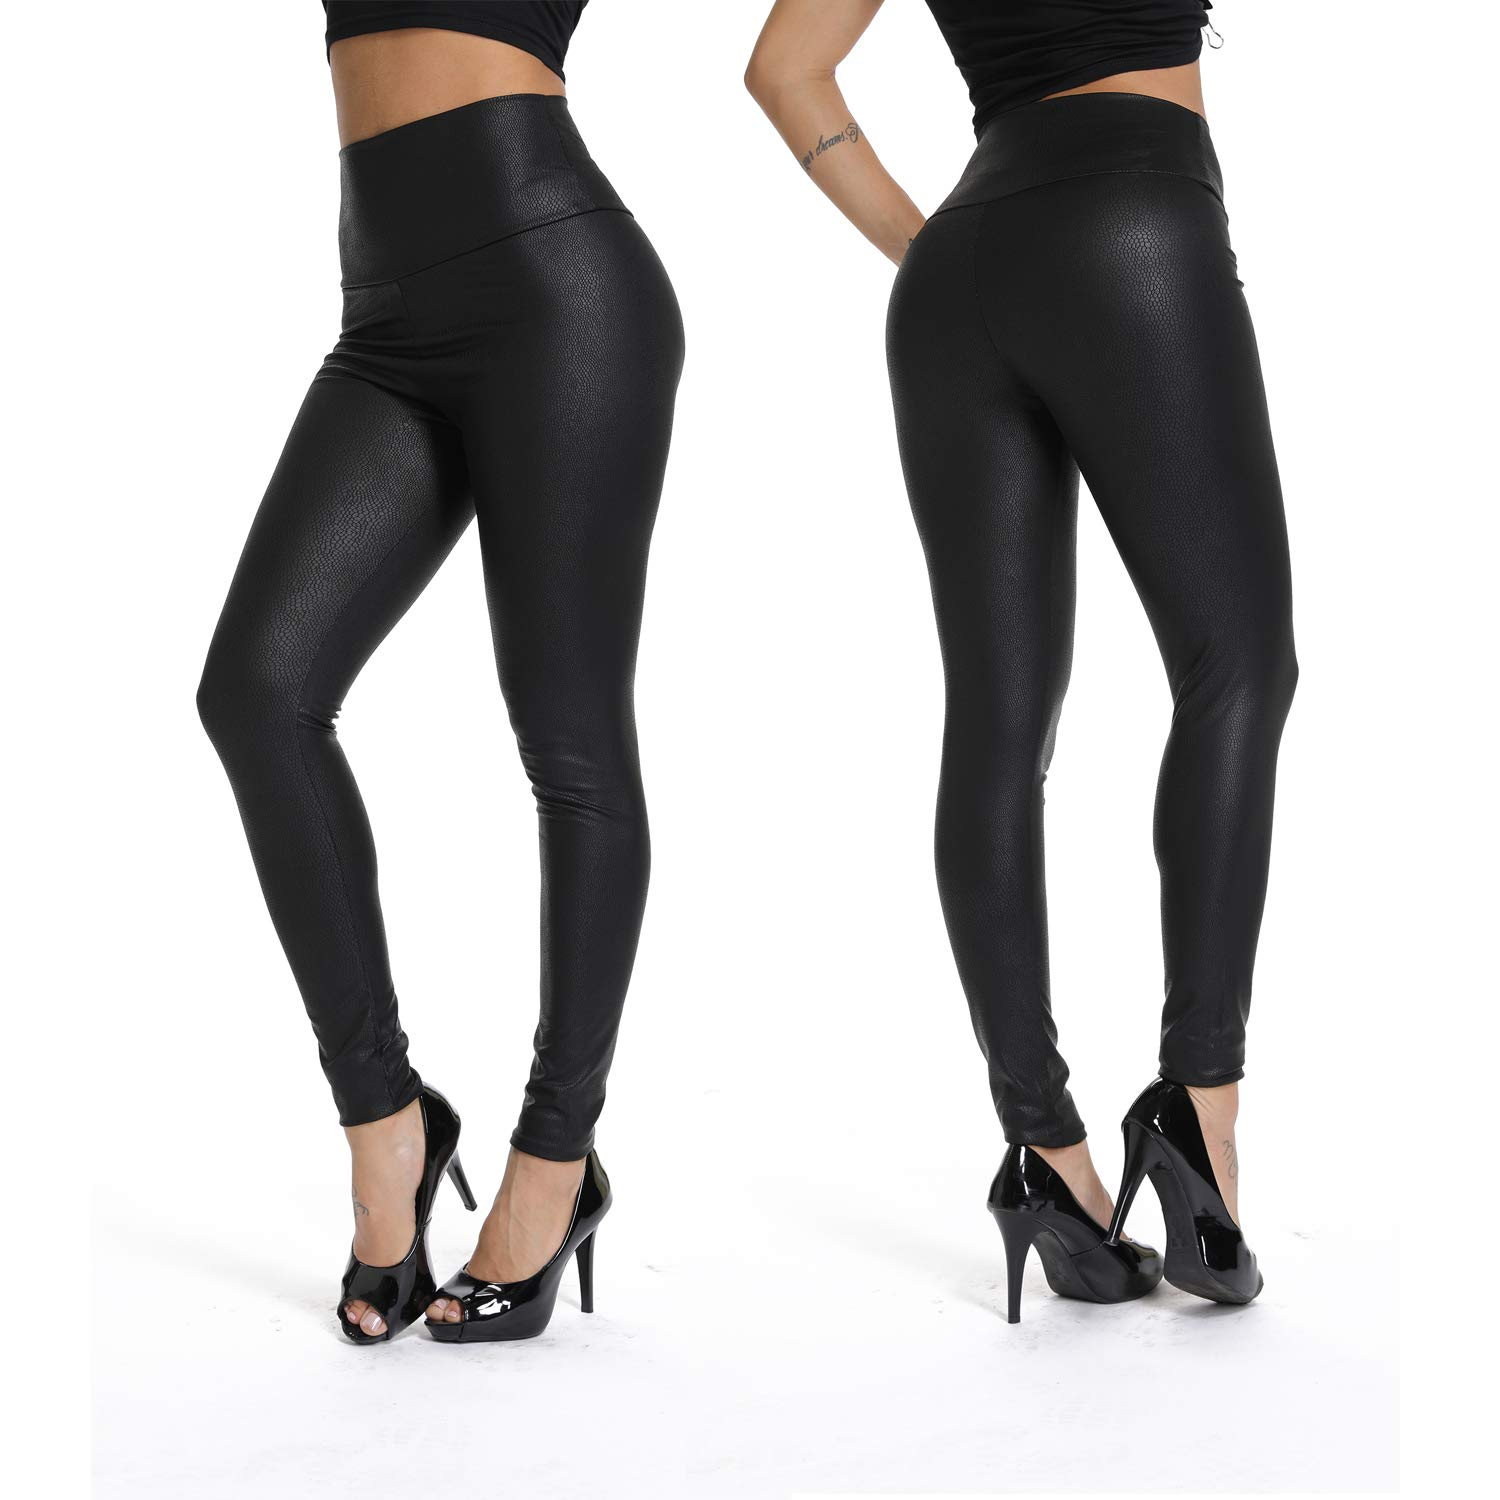 2 Matt Black(Upgraded order a size up) RIOJOY Womens Sexy Faux Leather Leggings Skinny PU Butt Lift Bodycon Pants High Waist Trousers